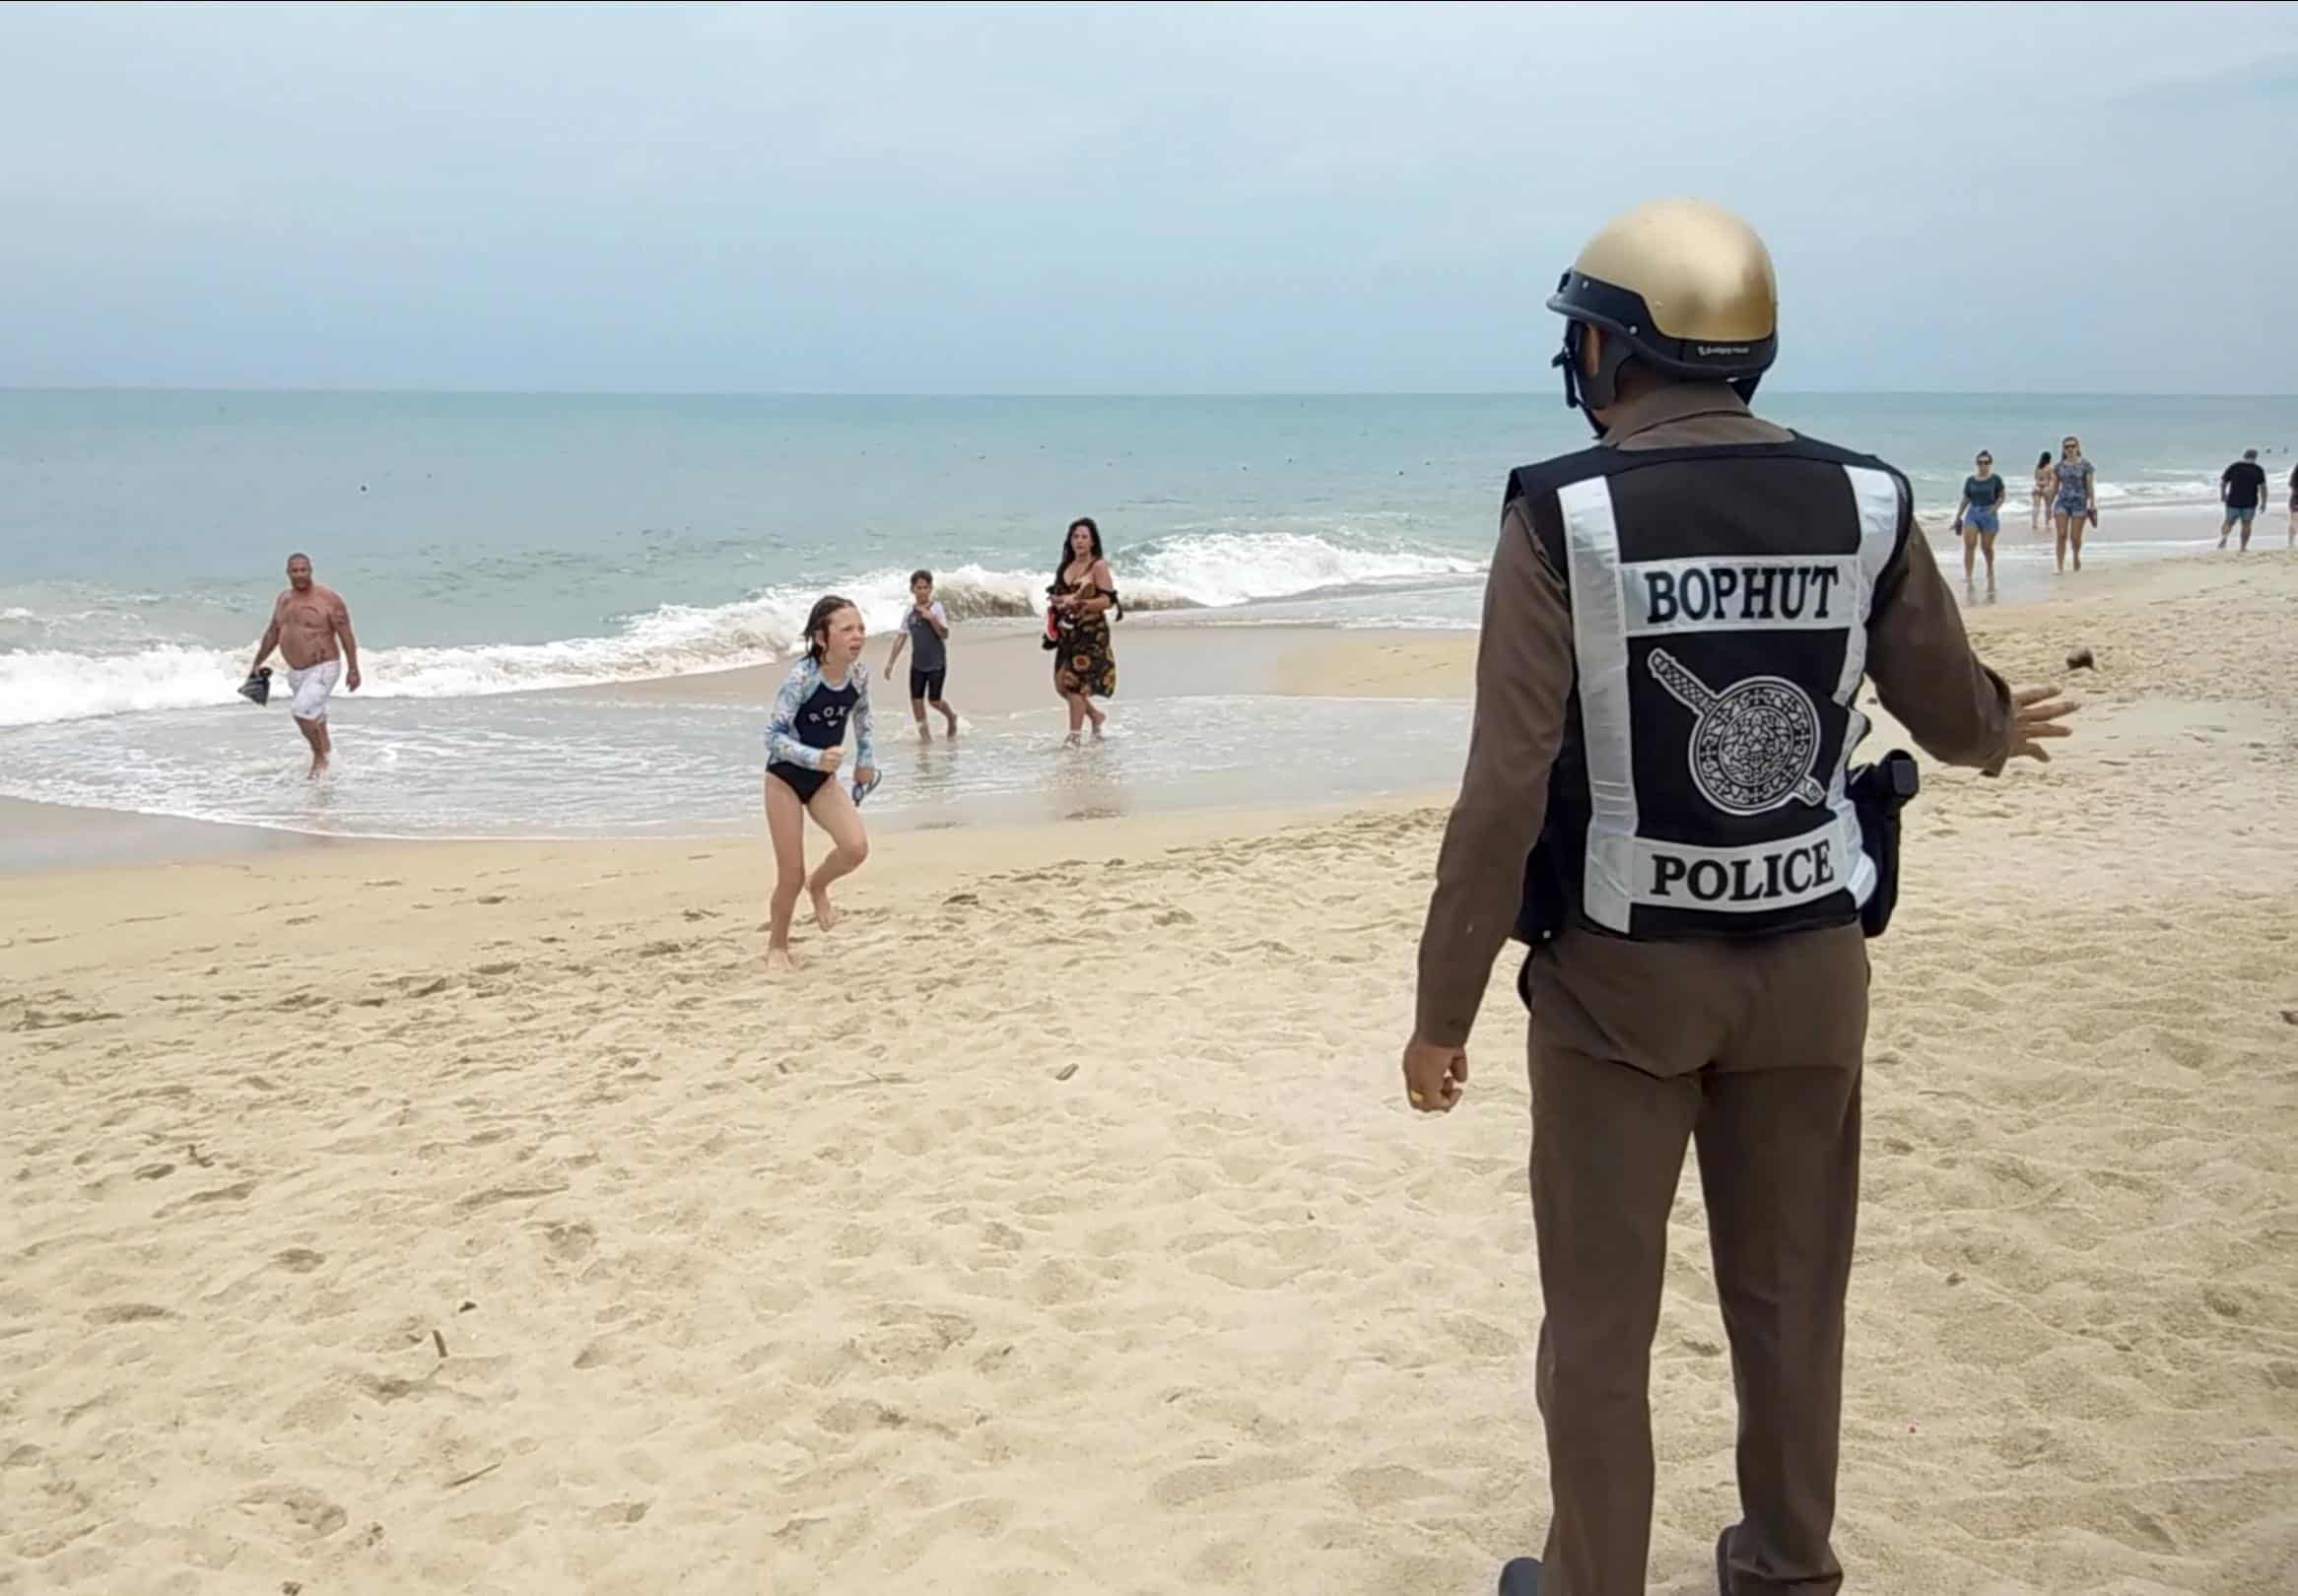 tourists-flee-thailand-as-tropical-storm-pabuk-threatens-seven-metre-waves-the-independent Tourists flee Thailand as tropical Storm Pabuk threatens seven-metre waves - The Independent